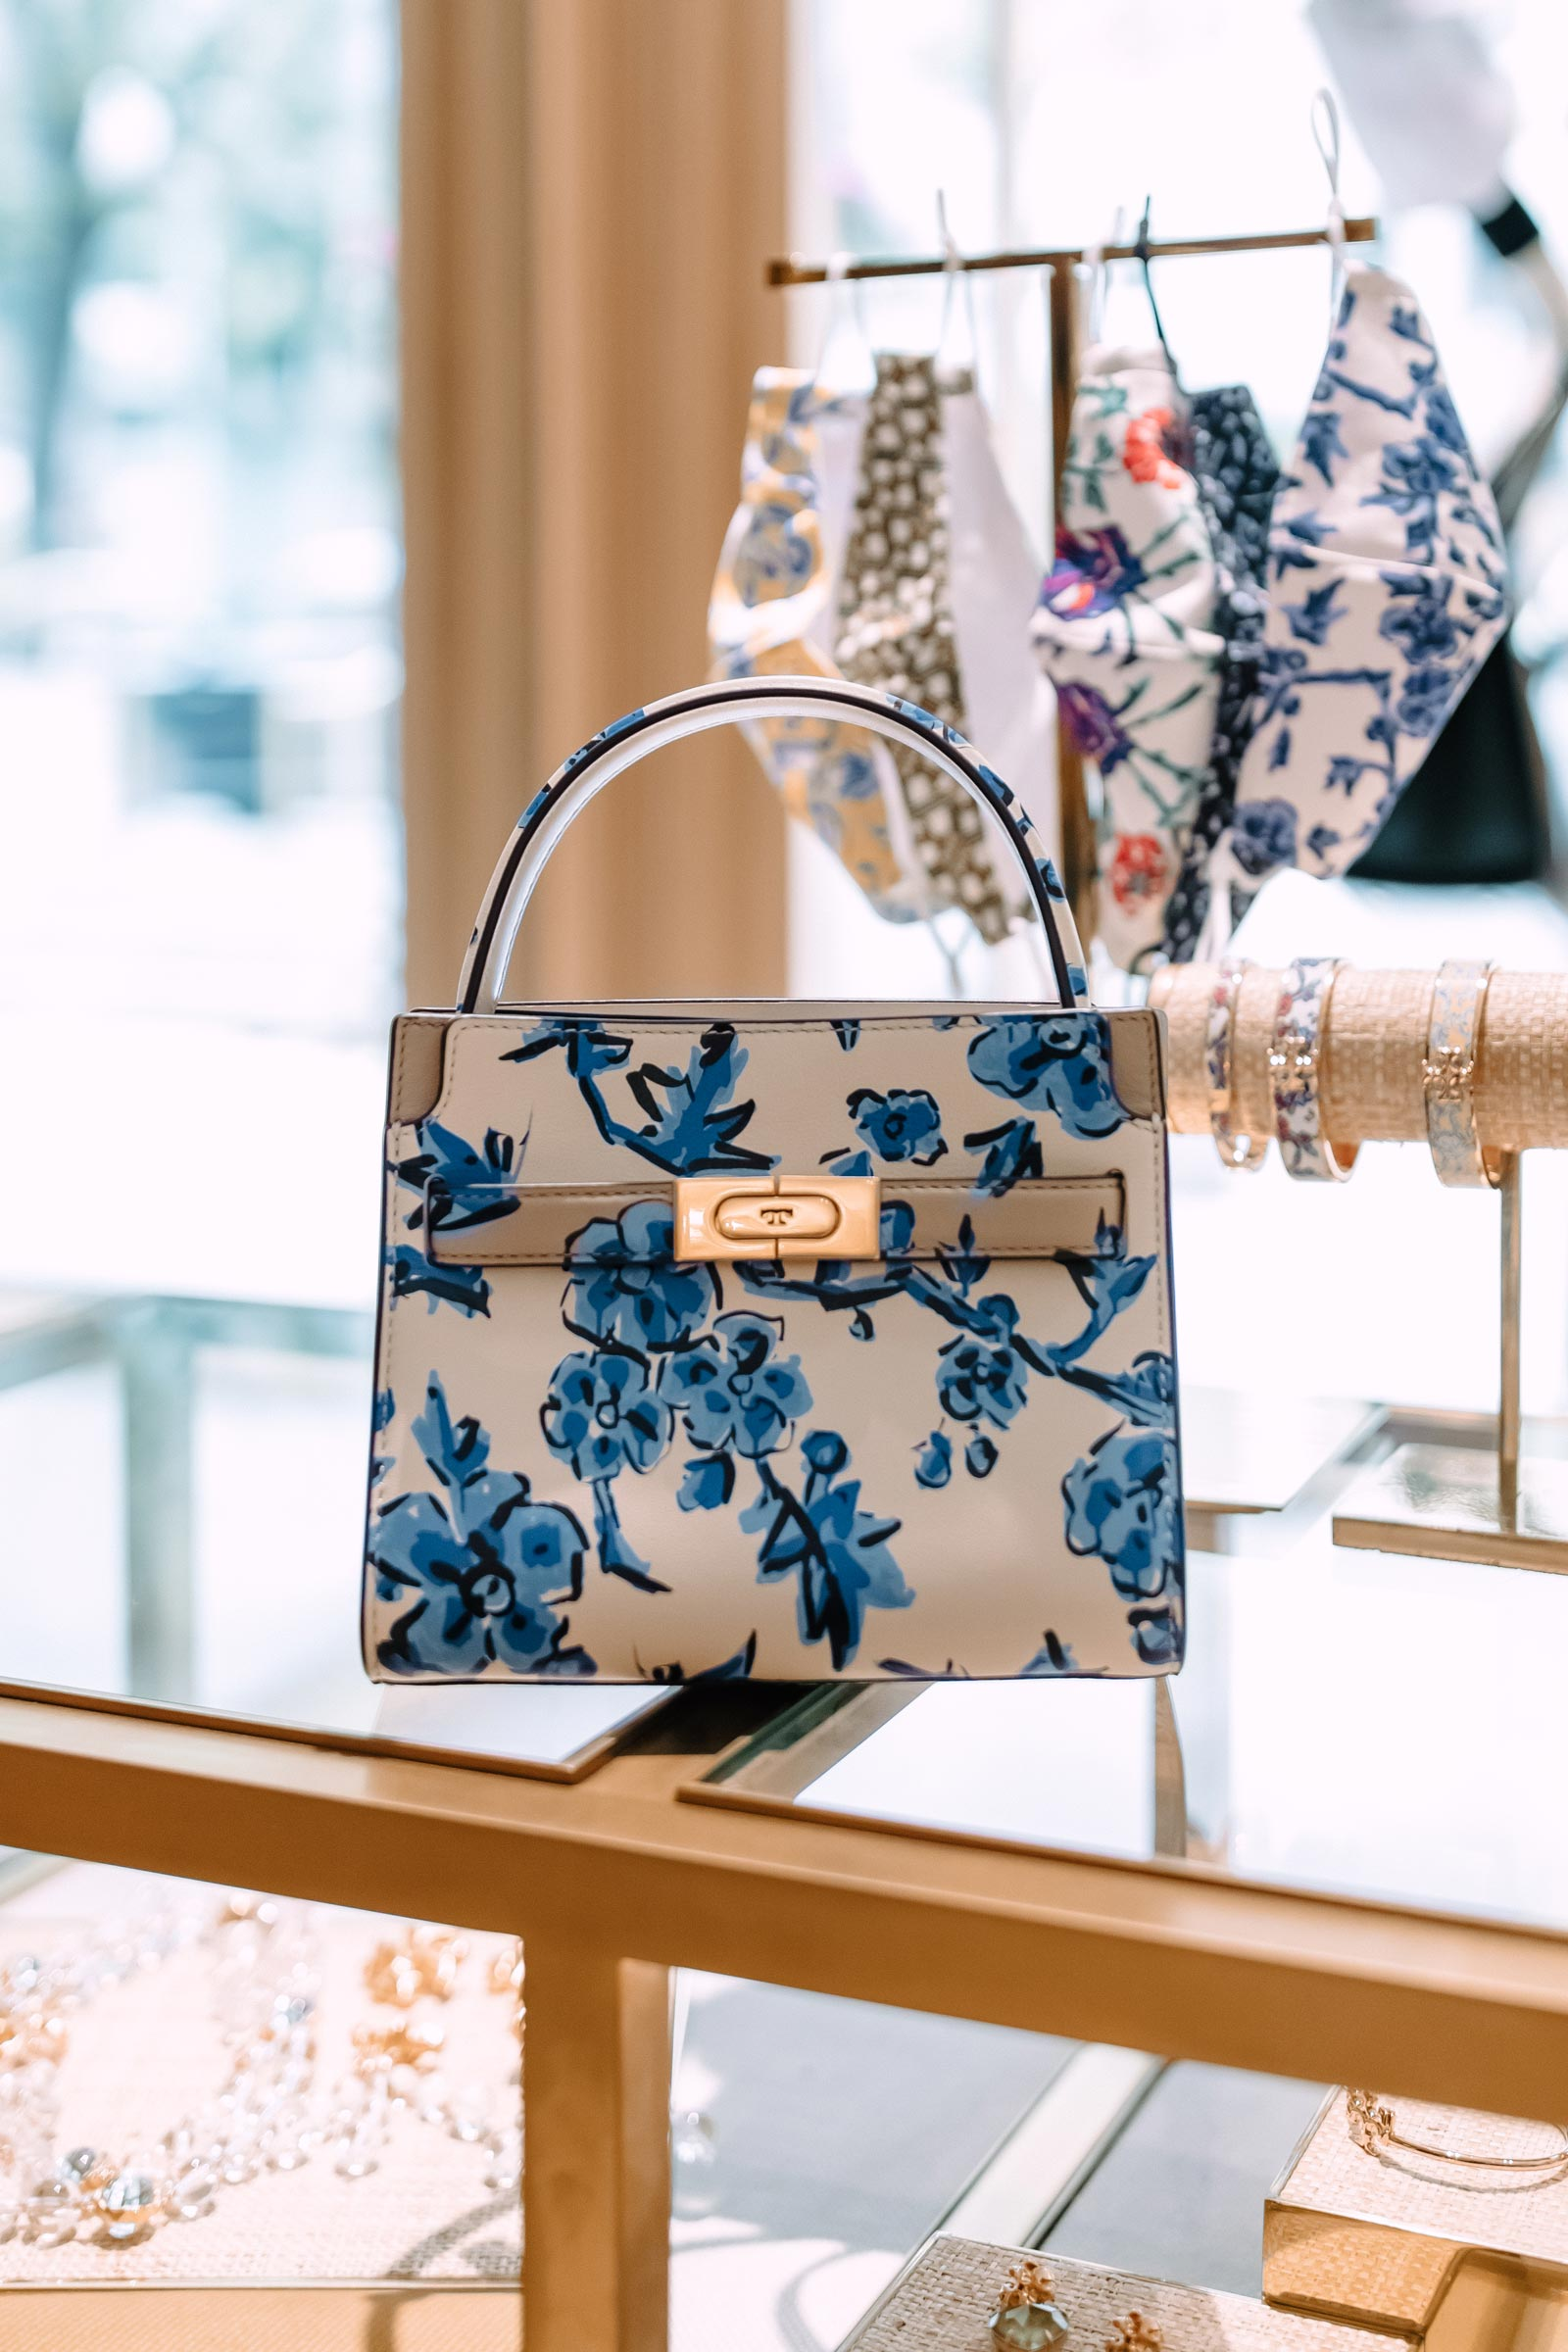 Tory Burch Floral Lee Radziwill Bag